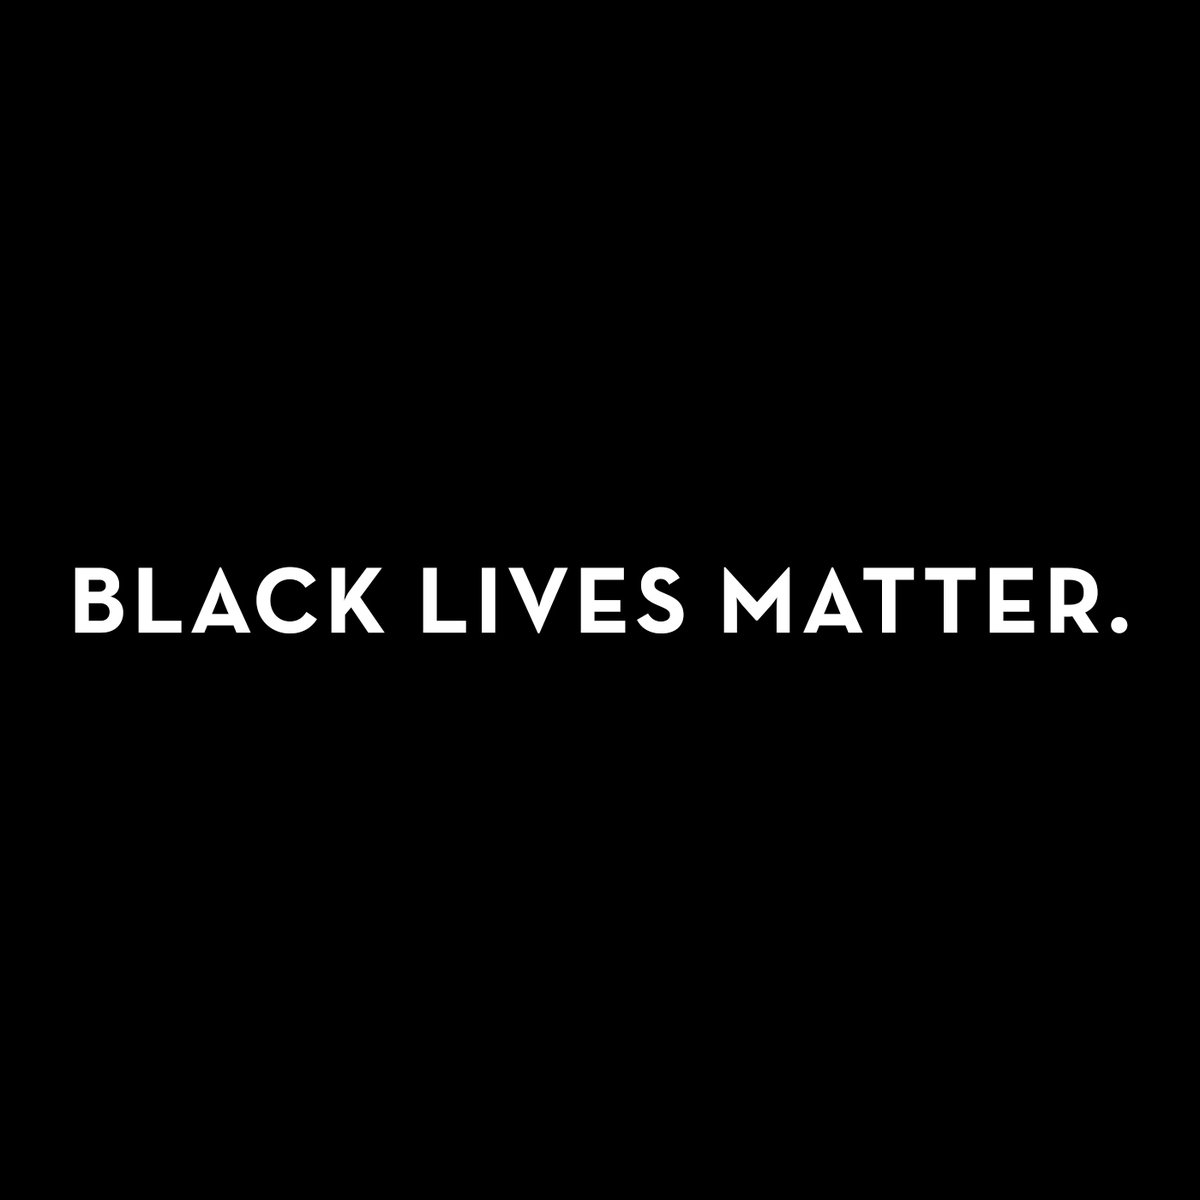 We believe that Black lives matter. We stand and support those in our community and beyond who seek justice and demand equality. Please join us in donating to the @BKBailFund and @mnfreedomfund.